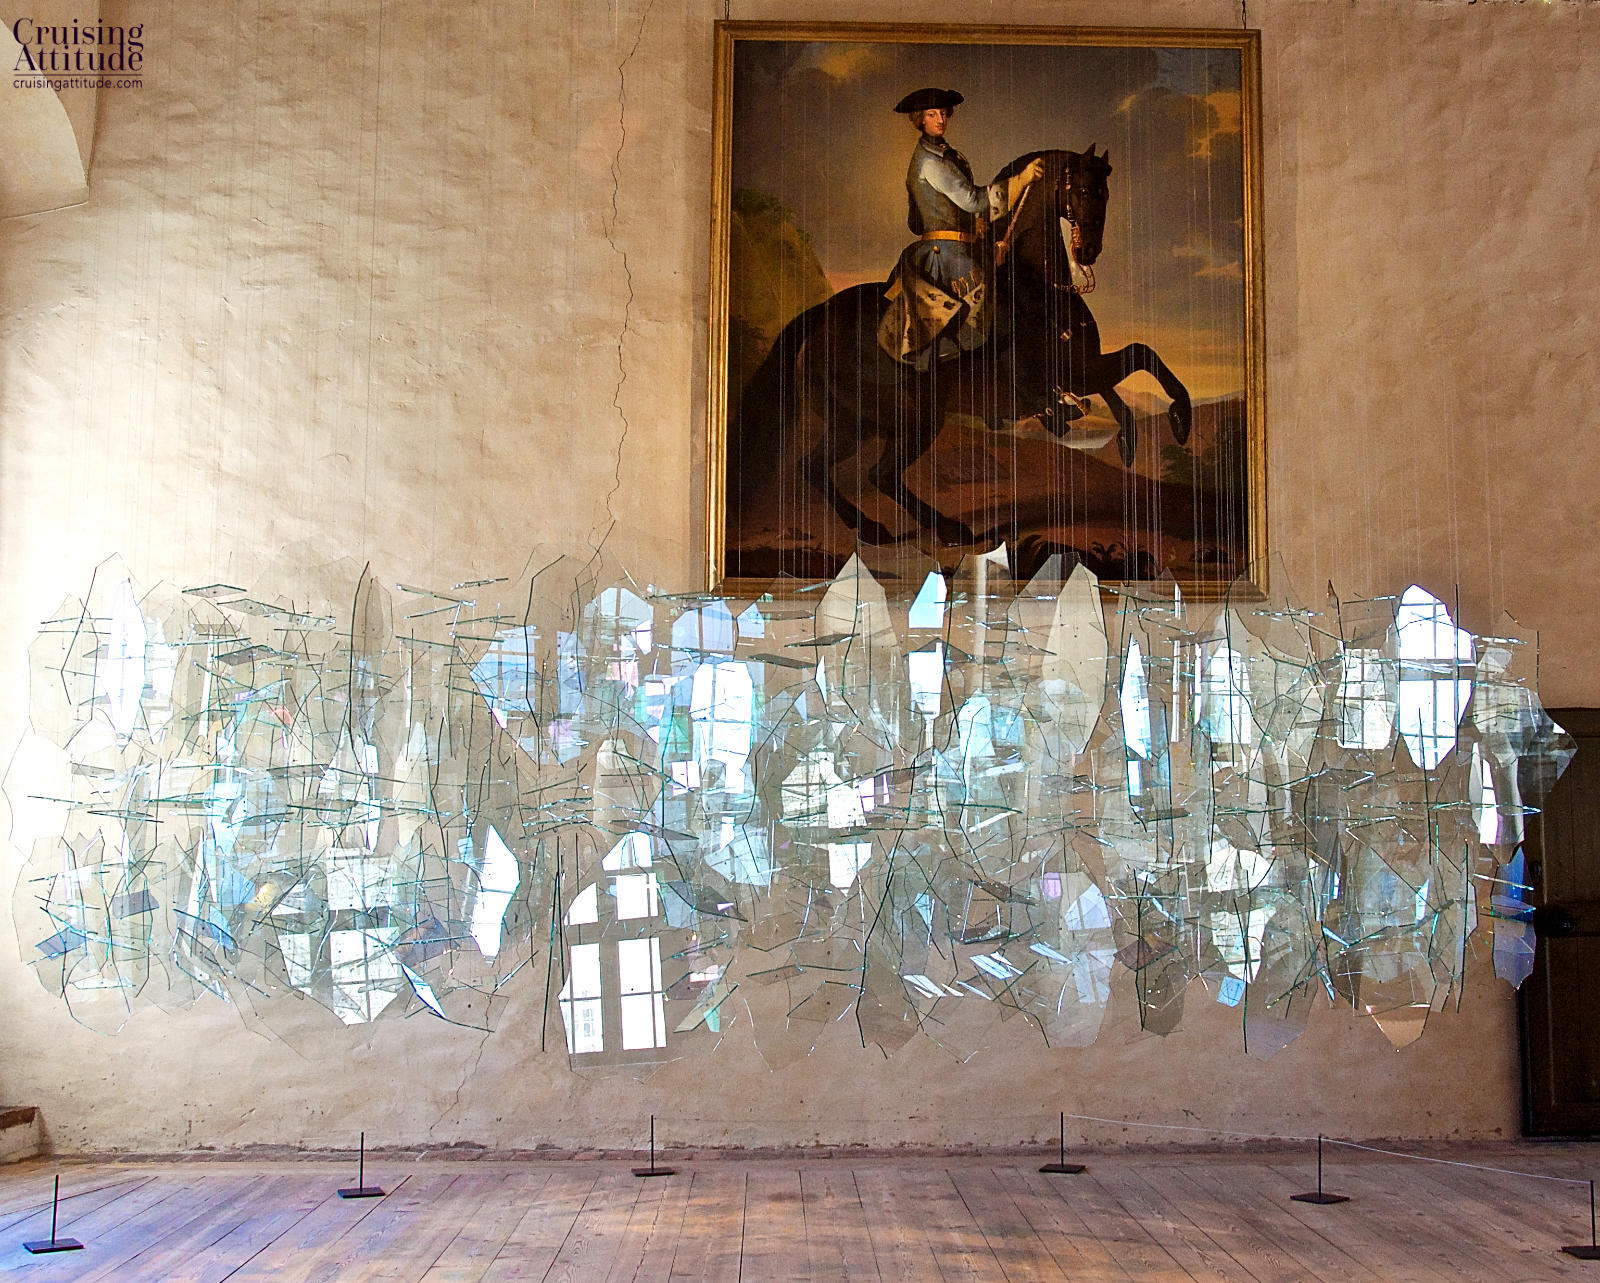 Glass sculpture exhibit at Kalmar Castle | Cruising Attitude Sailing Blog - Discovery 55